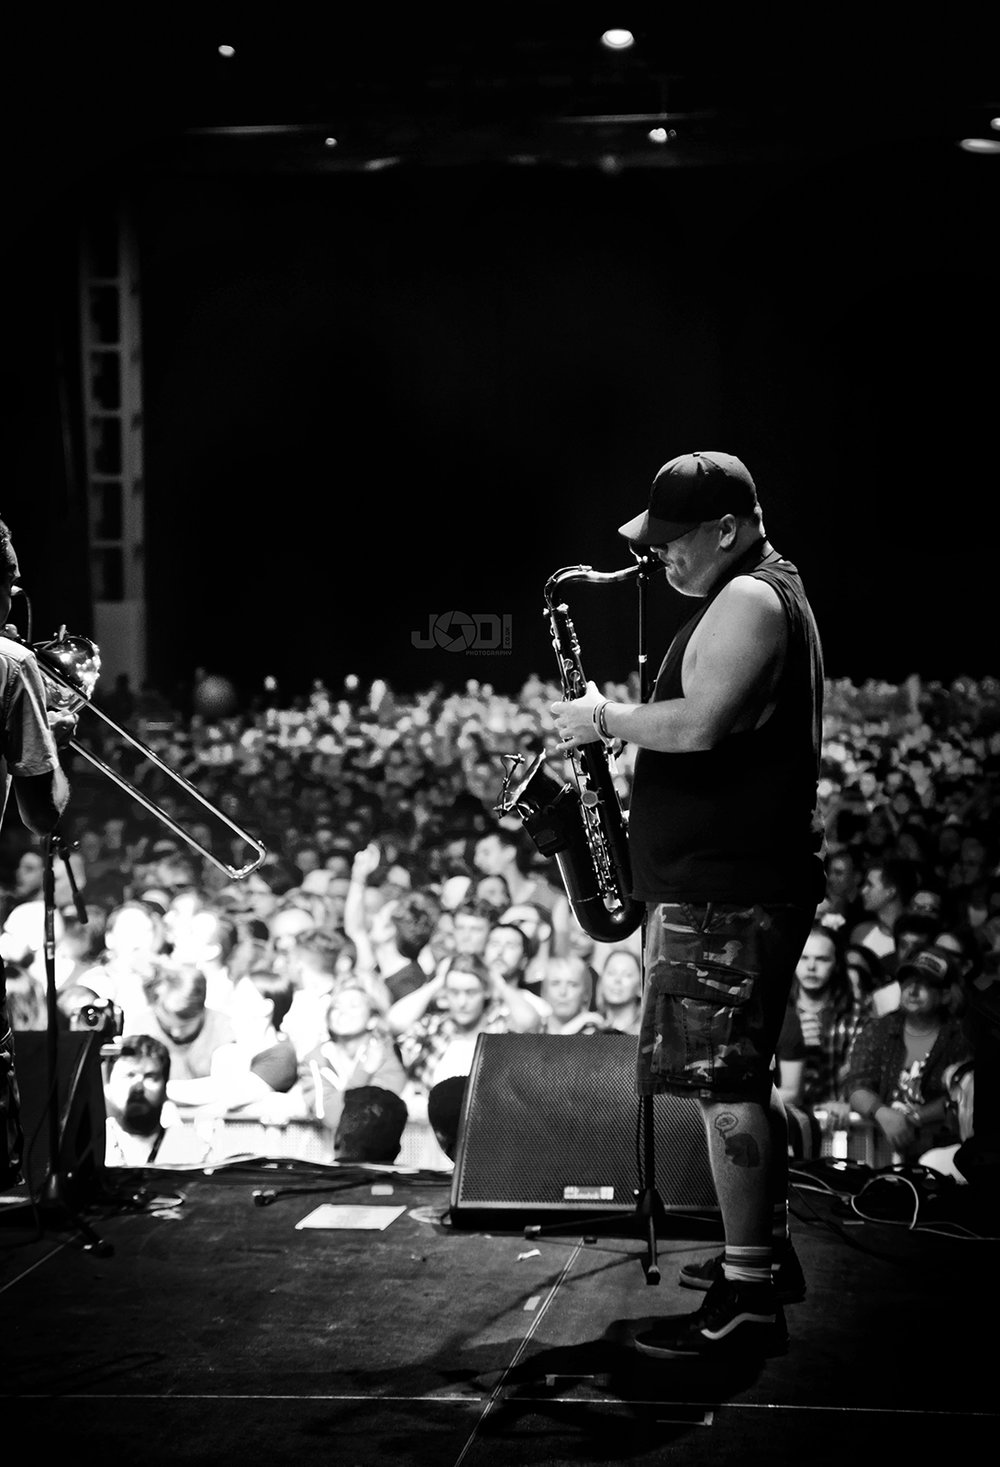 Less Than Jake at slam dunk midlands 2017 by jodiphotography 67.jpg